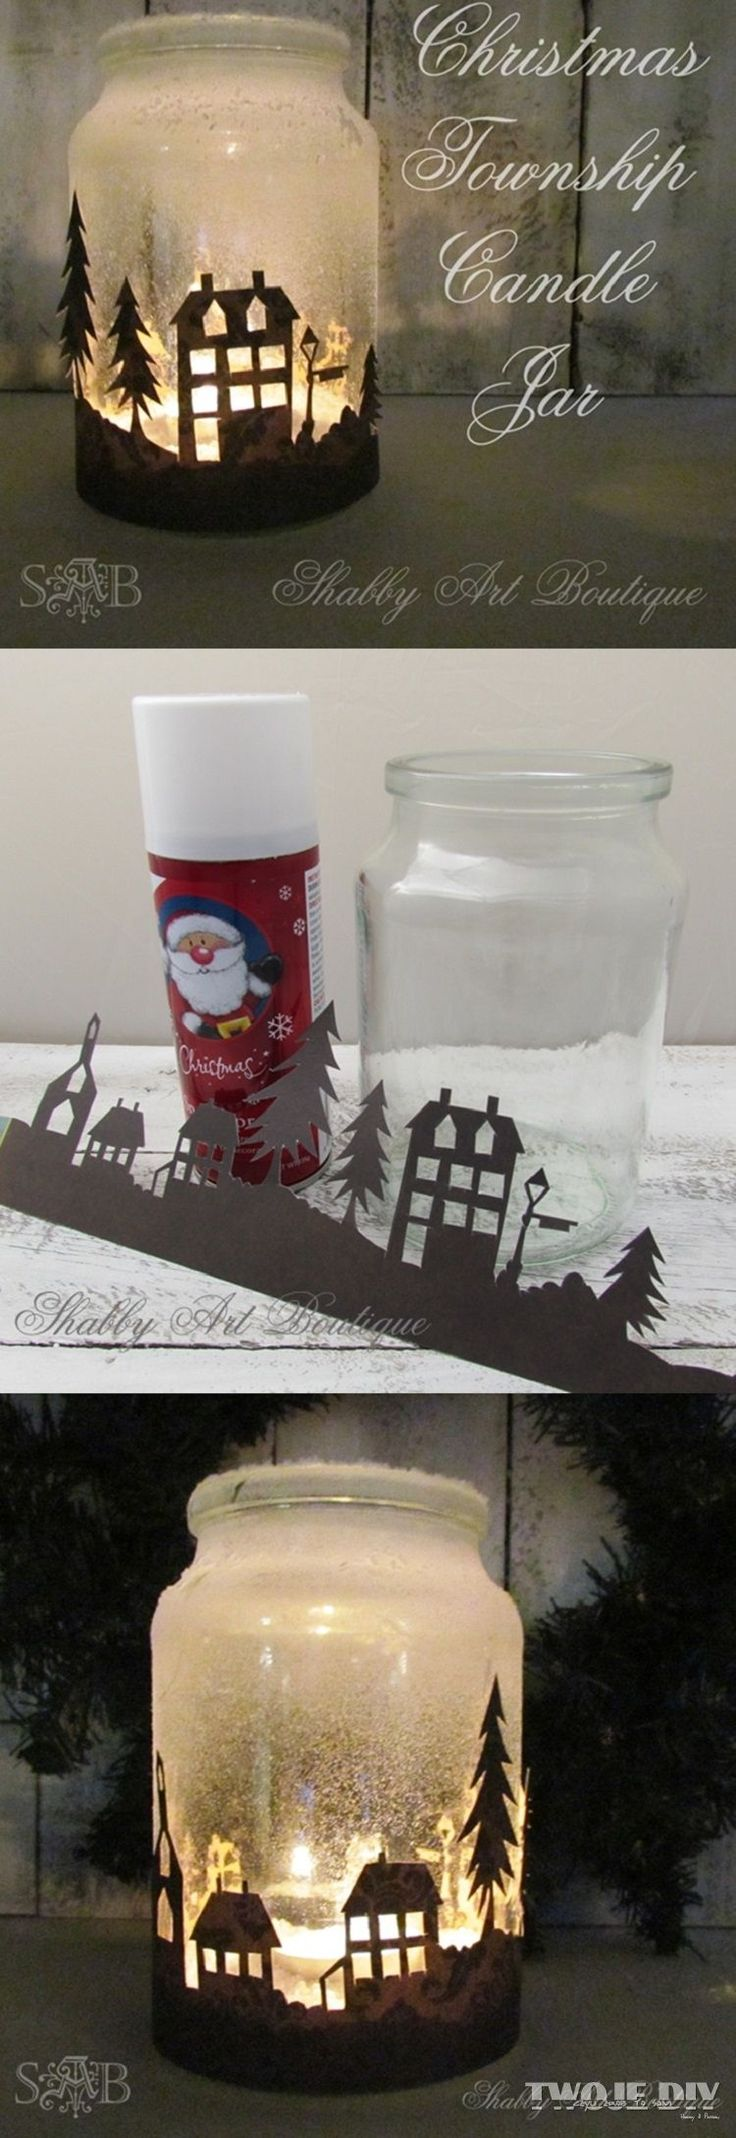 Christmas Township Candle Jar - complete directions for a quick and easy candle jar that will look amazing when illuminated at night.